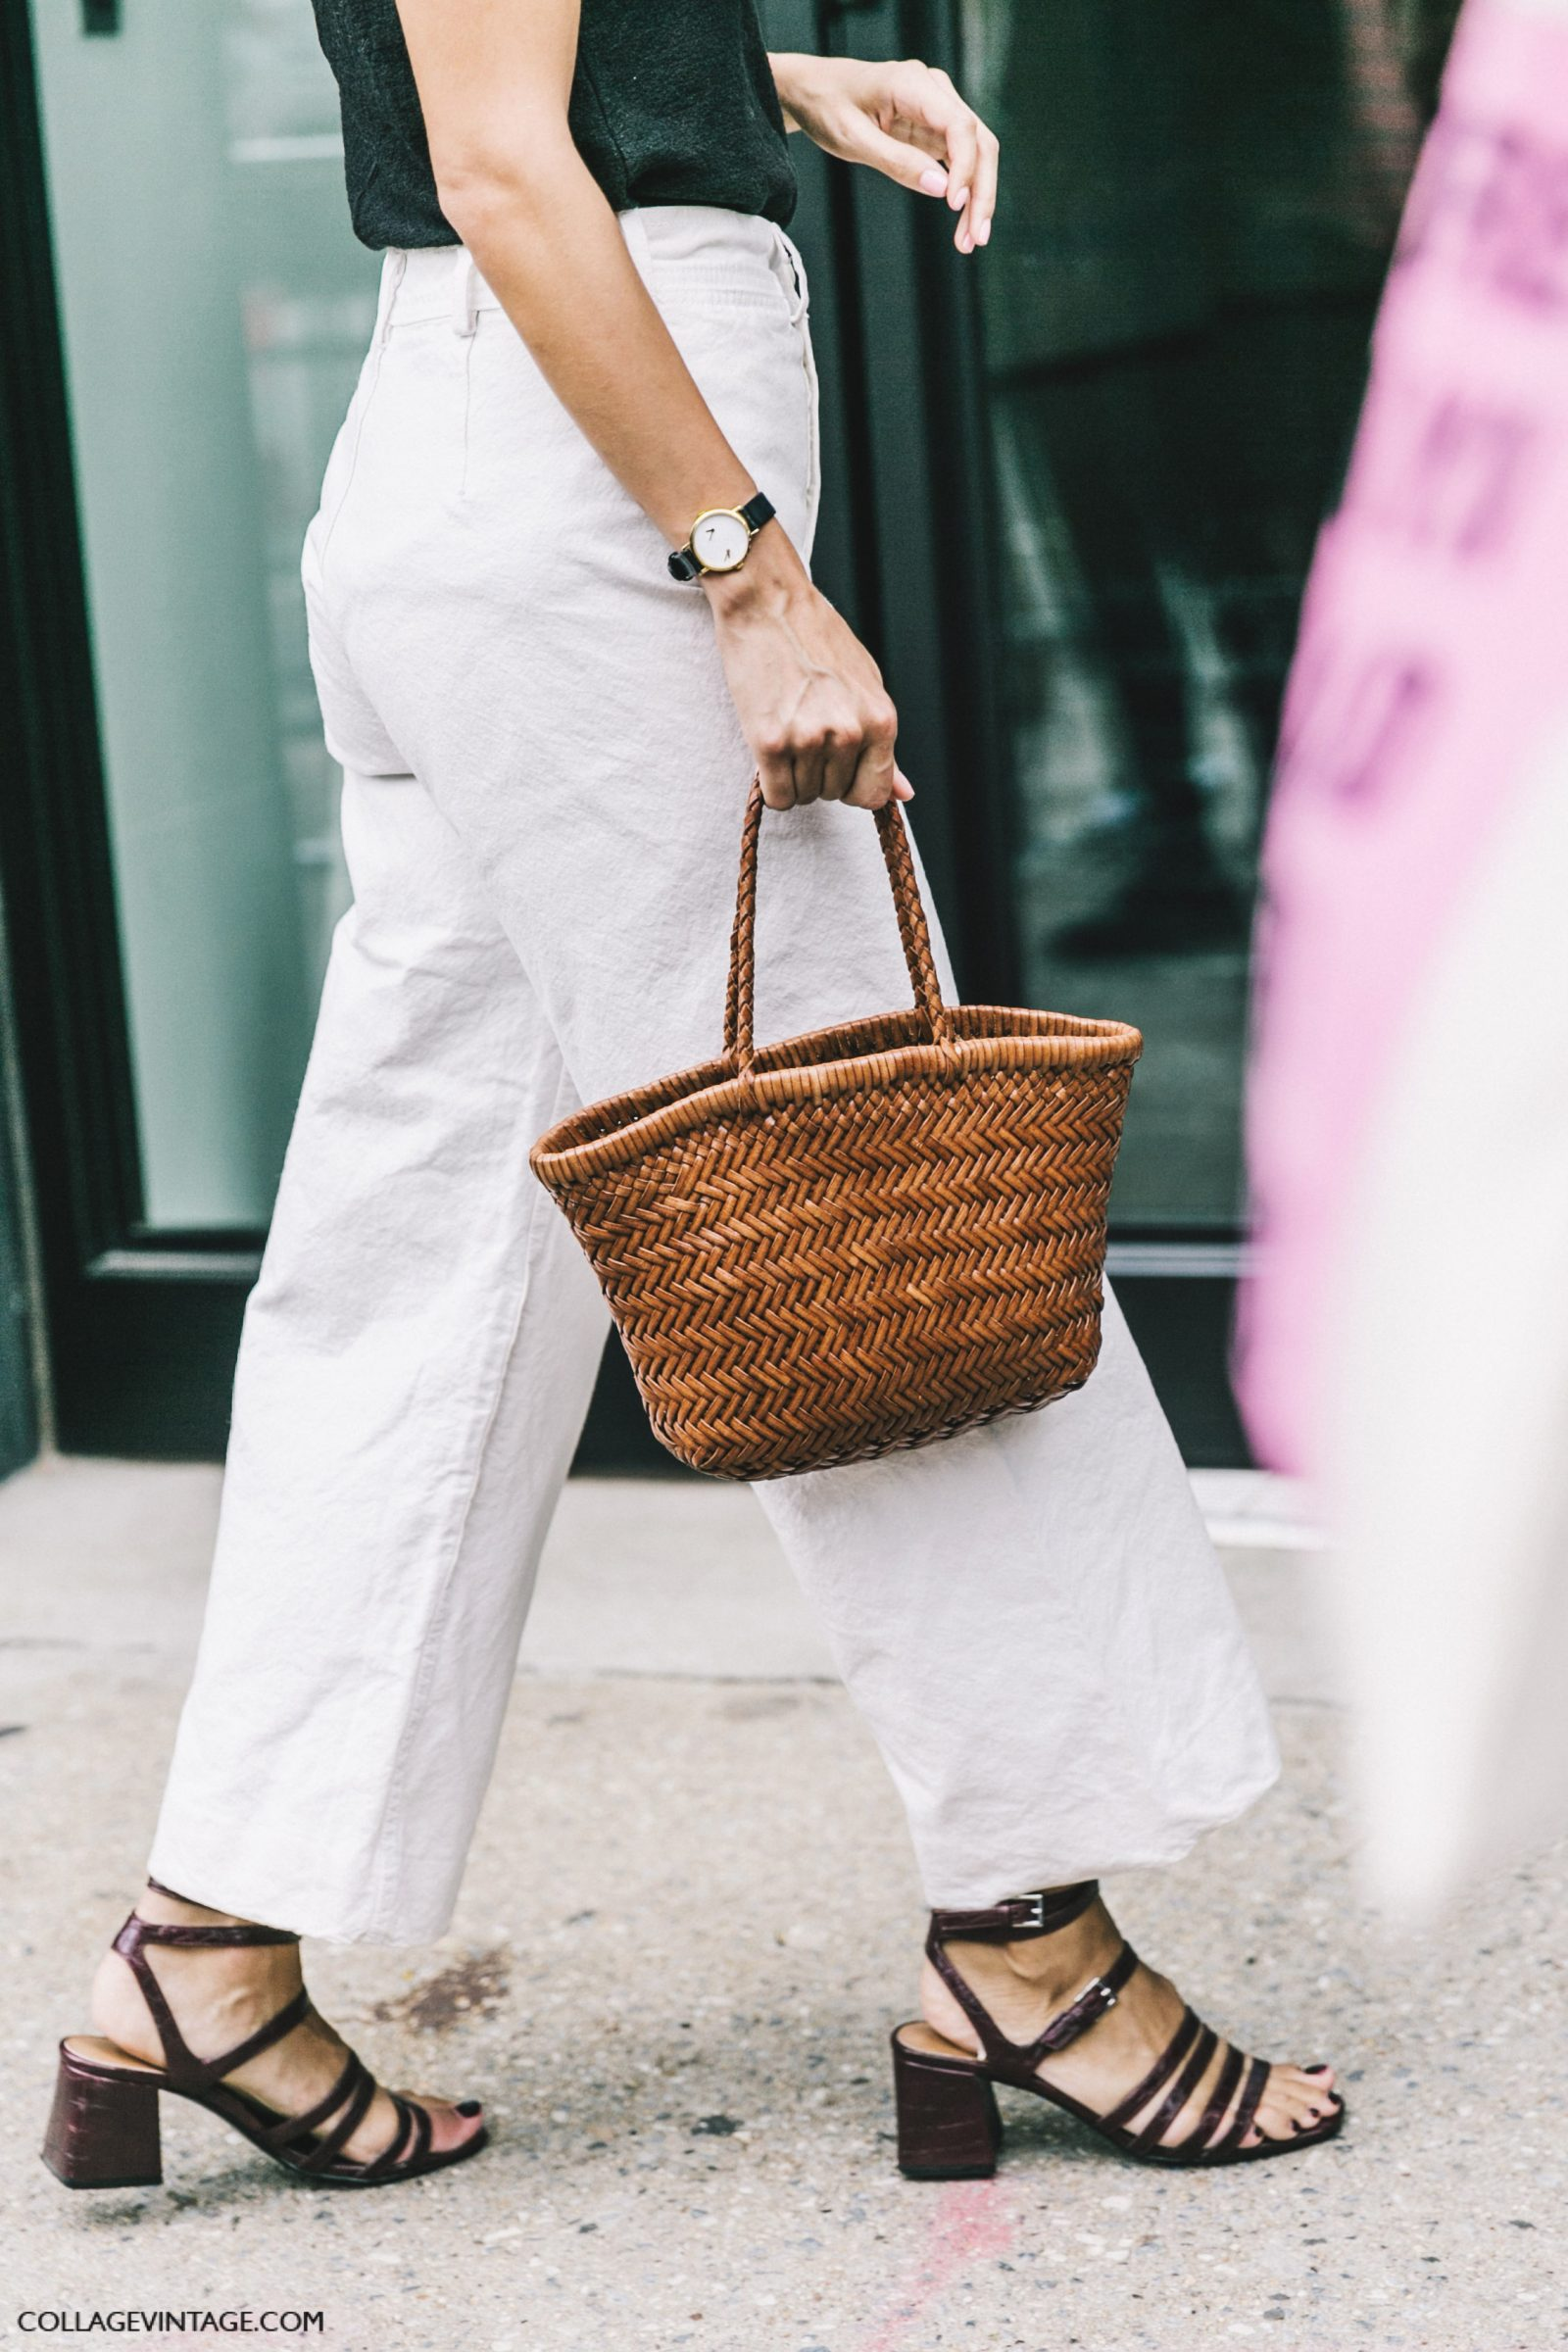 nyfw-new_york_fashion_week_ss17-street_style-outfits-collage_vintage-basket-1